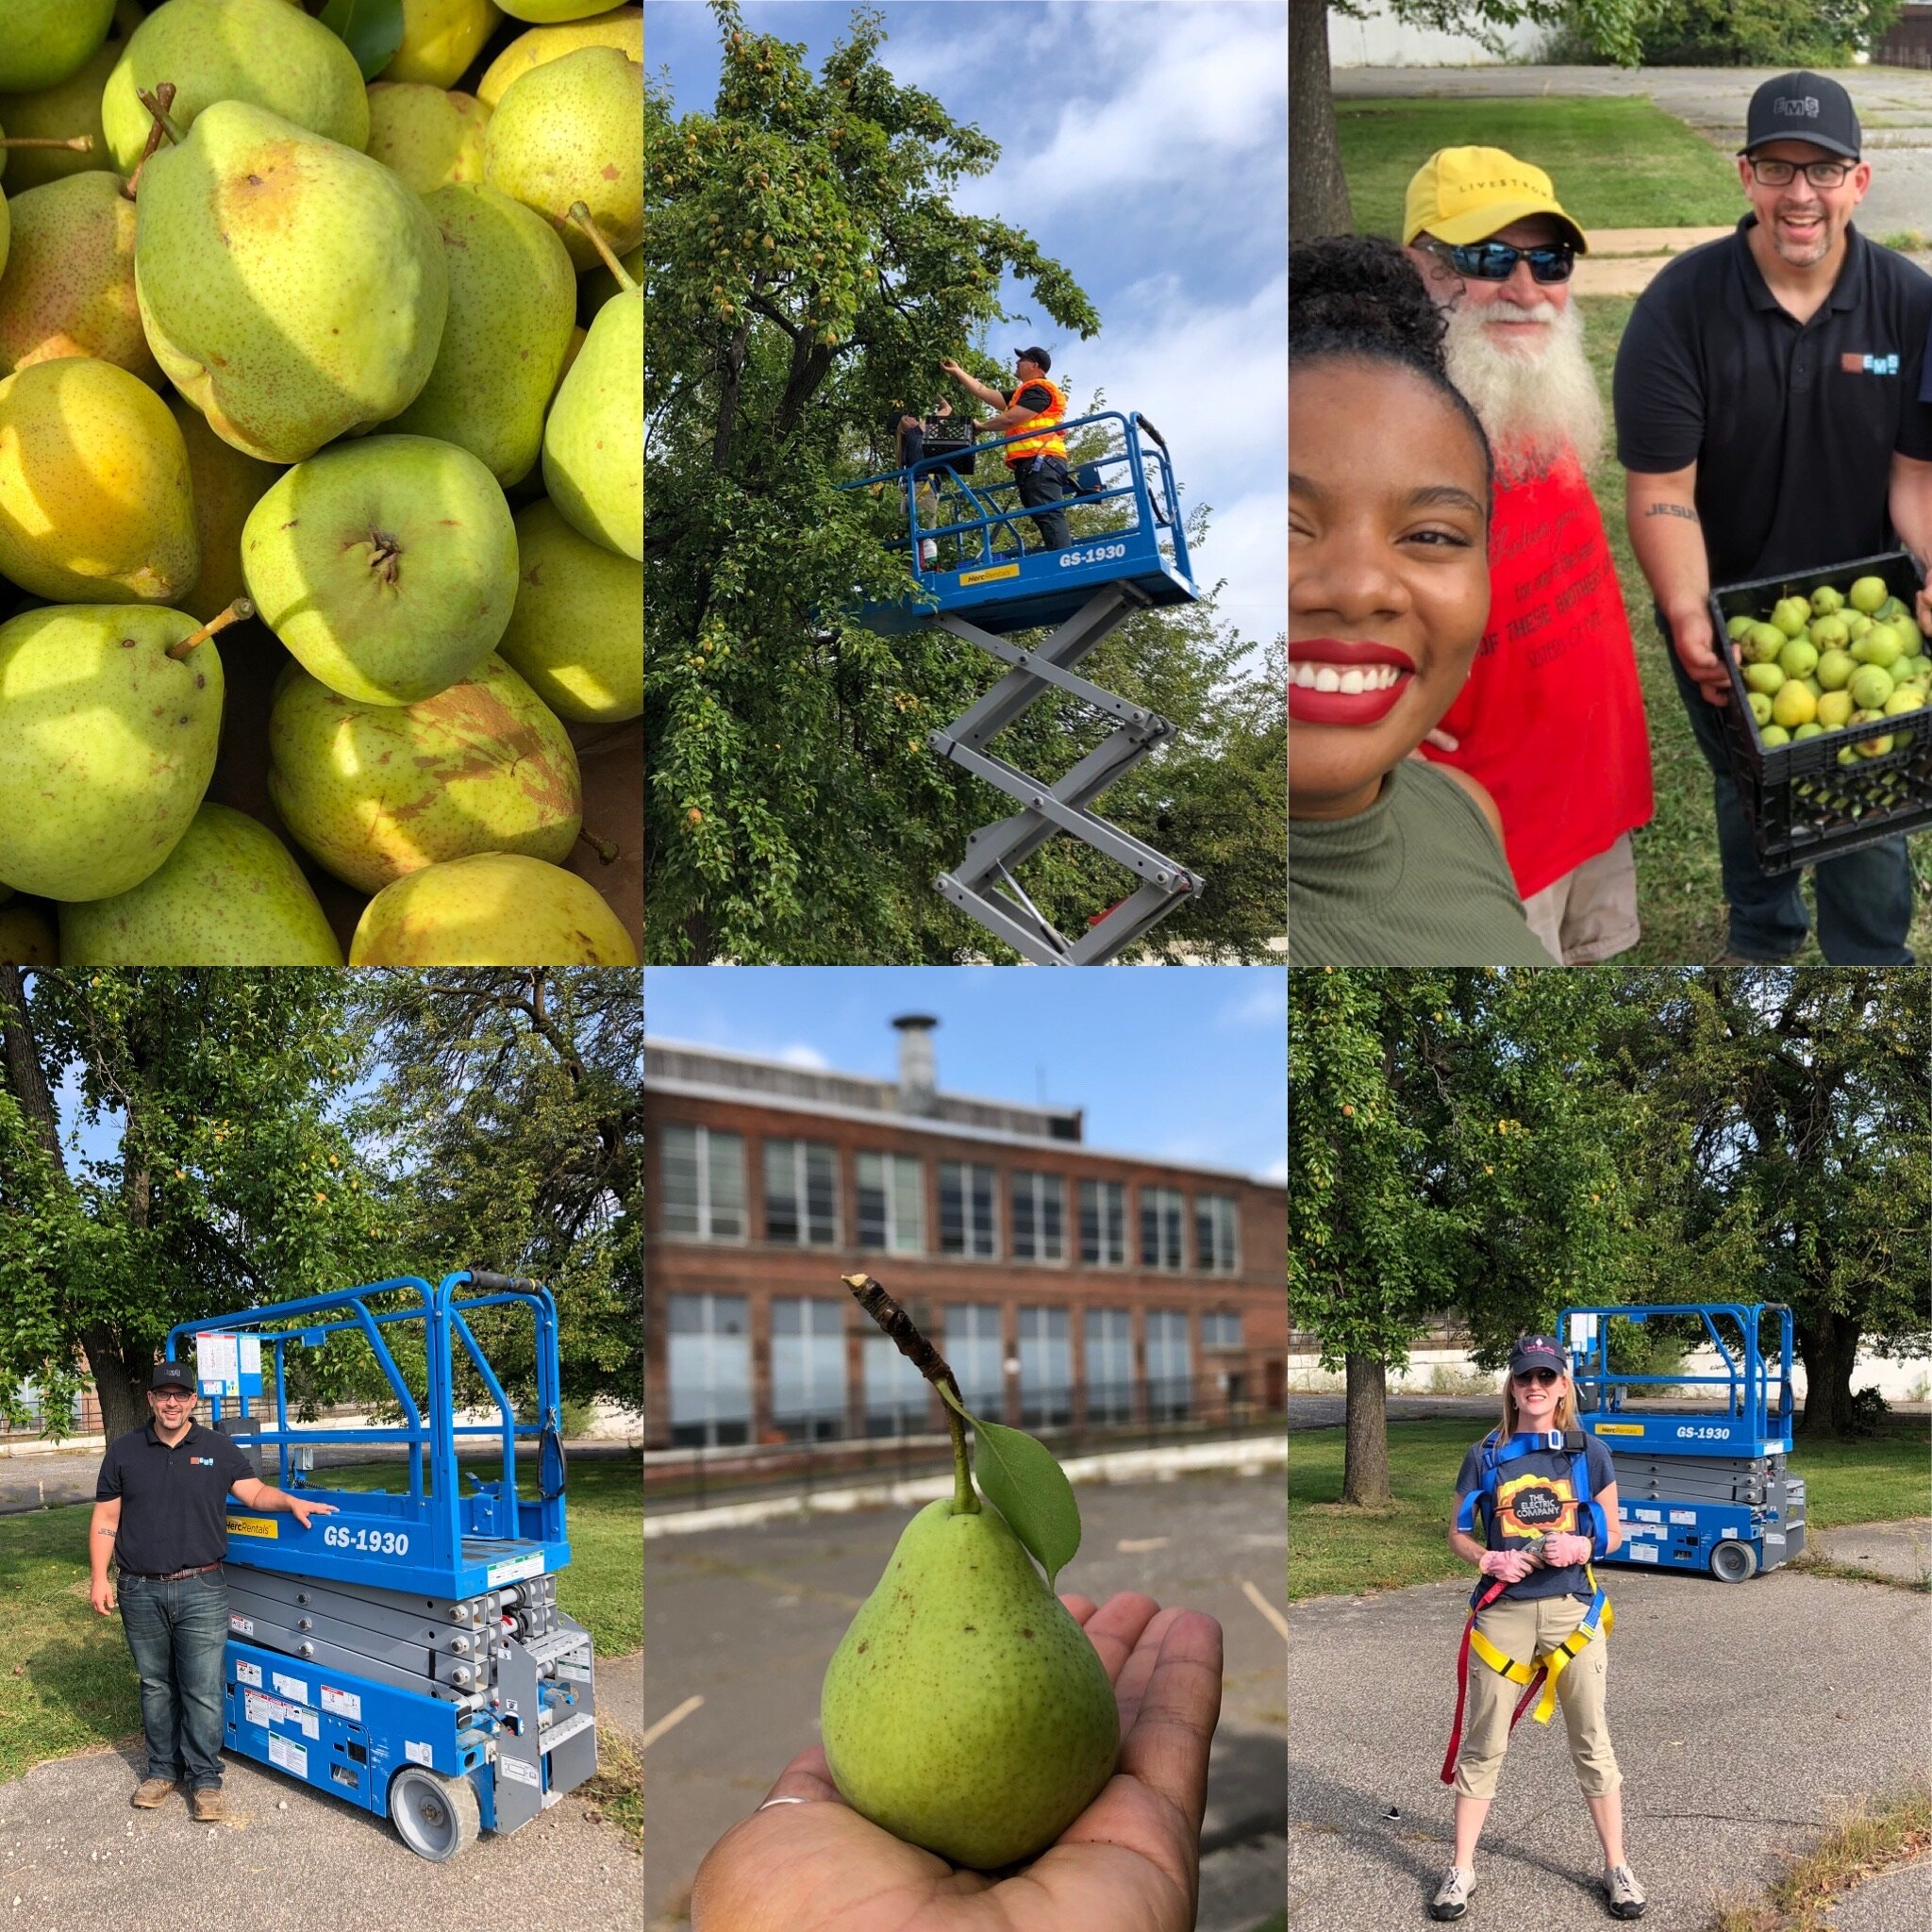 There's a project-within-a-project happening at Electric Works as volunteers work to harvest a beloved pear tree on campus and preserve its DNA for future generations.